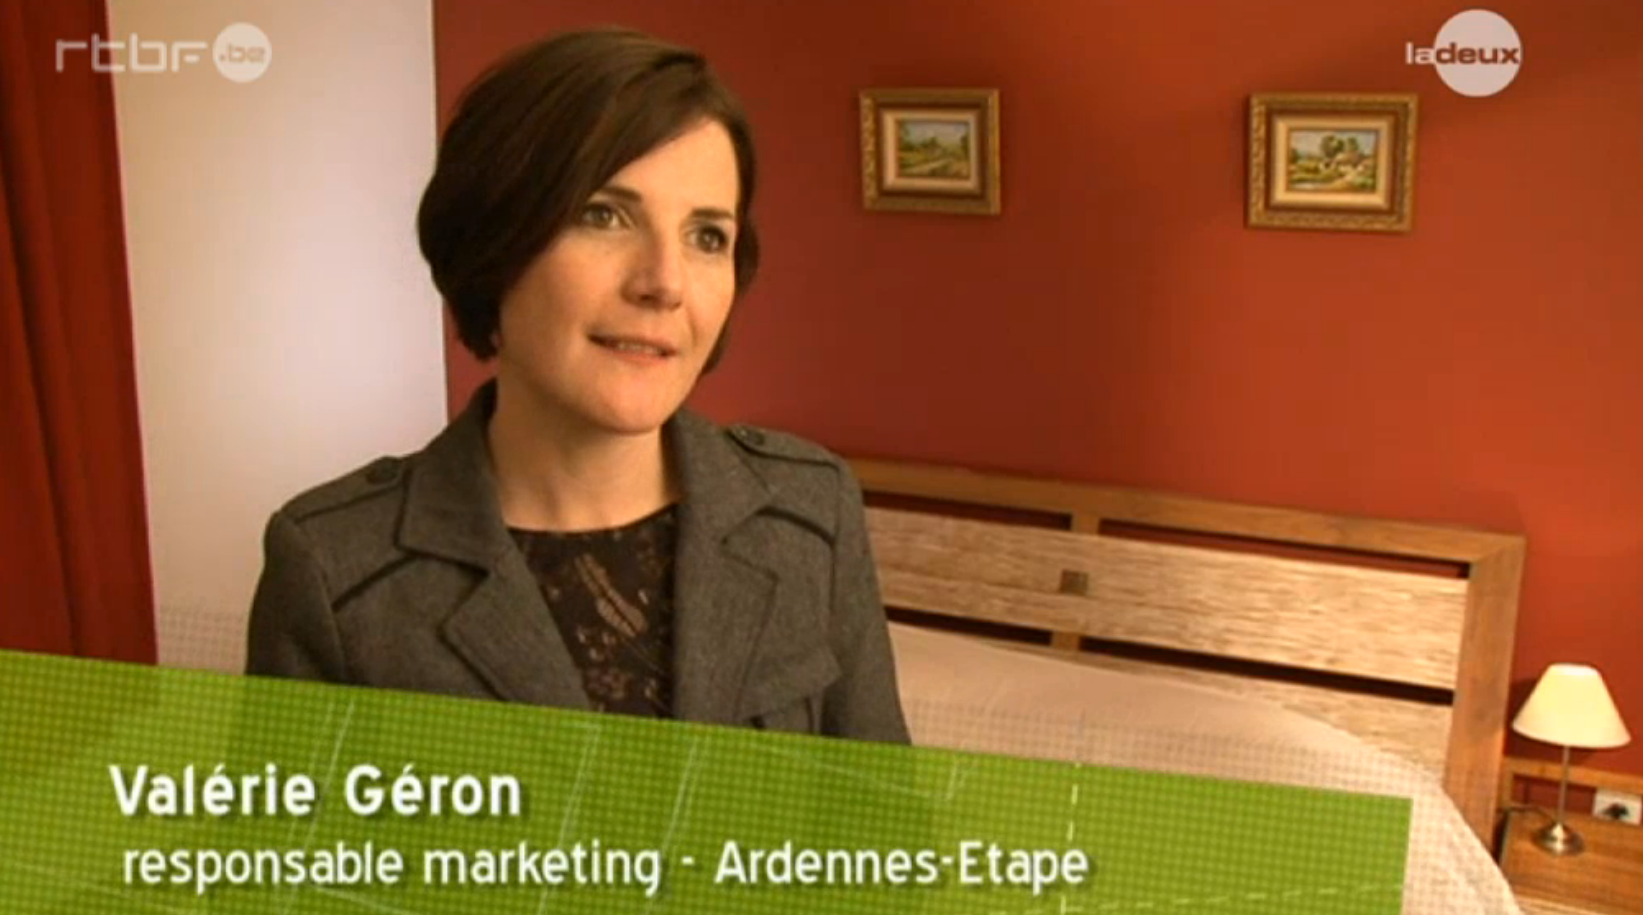 Valérie Geron, marketing & communication manager chez Ardennes-Etape